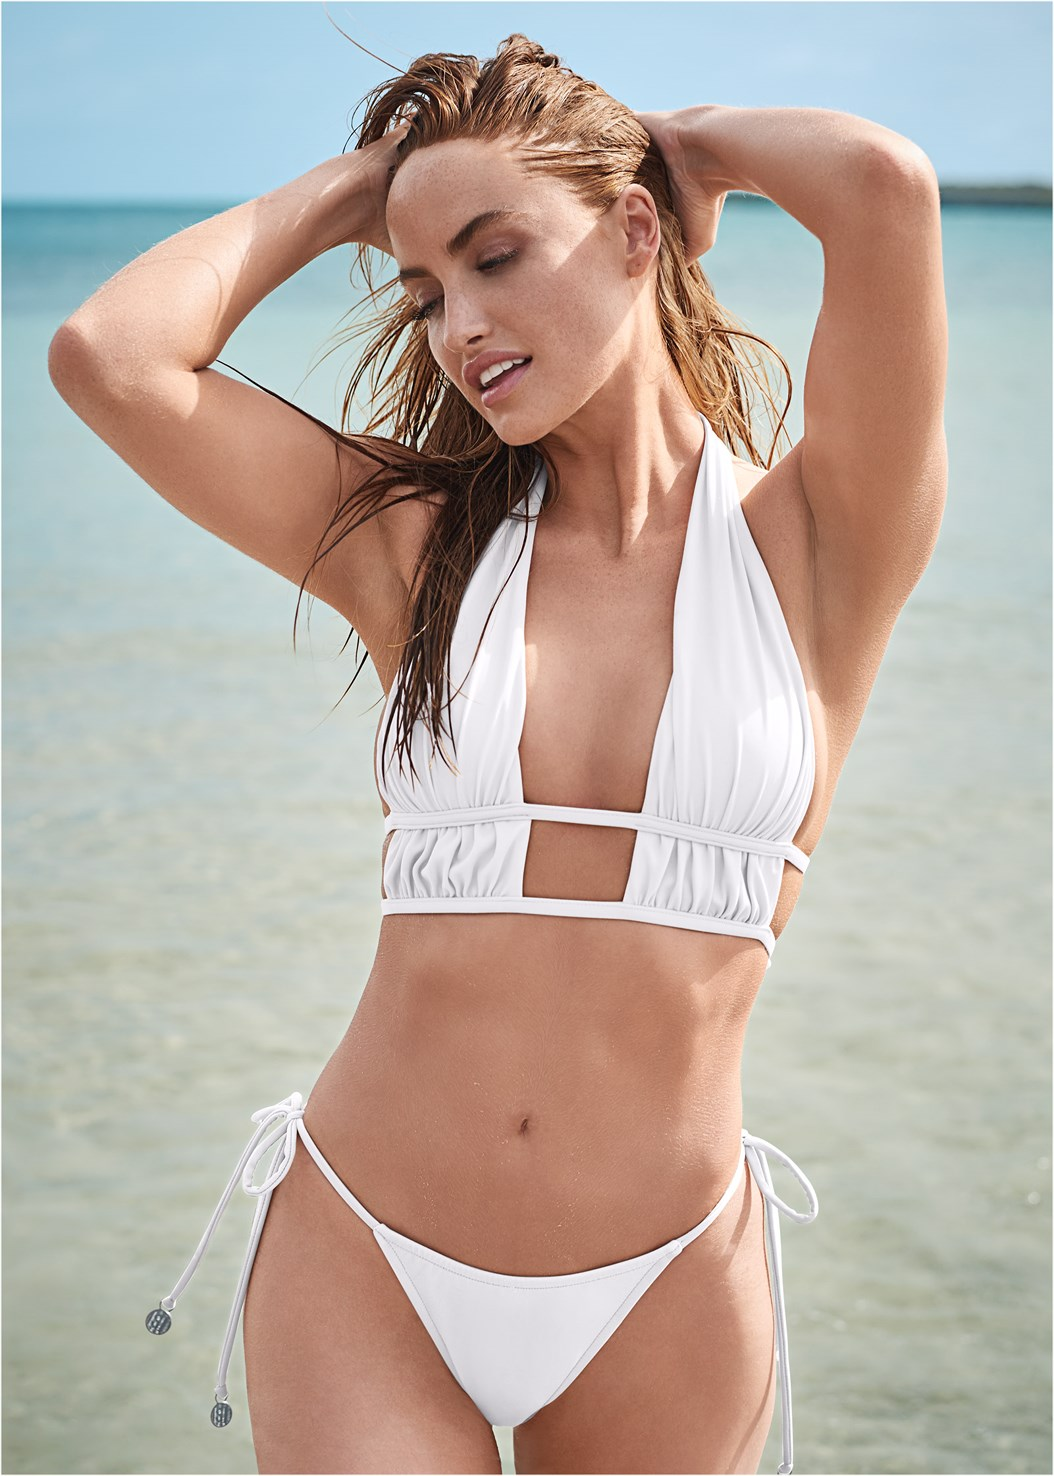 Sports Illustrated Swim™ Longline Triangle Top,Sports Illustrated Swim™ Tie Side String Bottom,Sports Illustrated Swim™ High Leg Ruched Bottom,Sports Illustrated Swim™ Low Rise Brief Bottom,Sports Illustrated Swim™ Brazilian Crisscross Bottom,Sports Illustrated Swim™ Color Block String Bottom